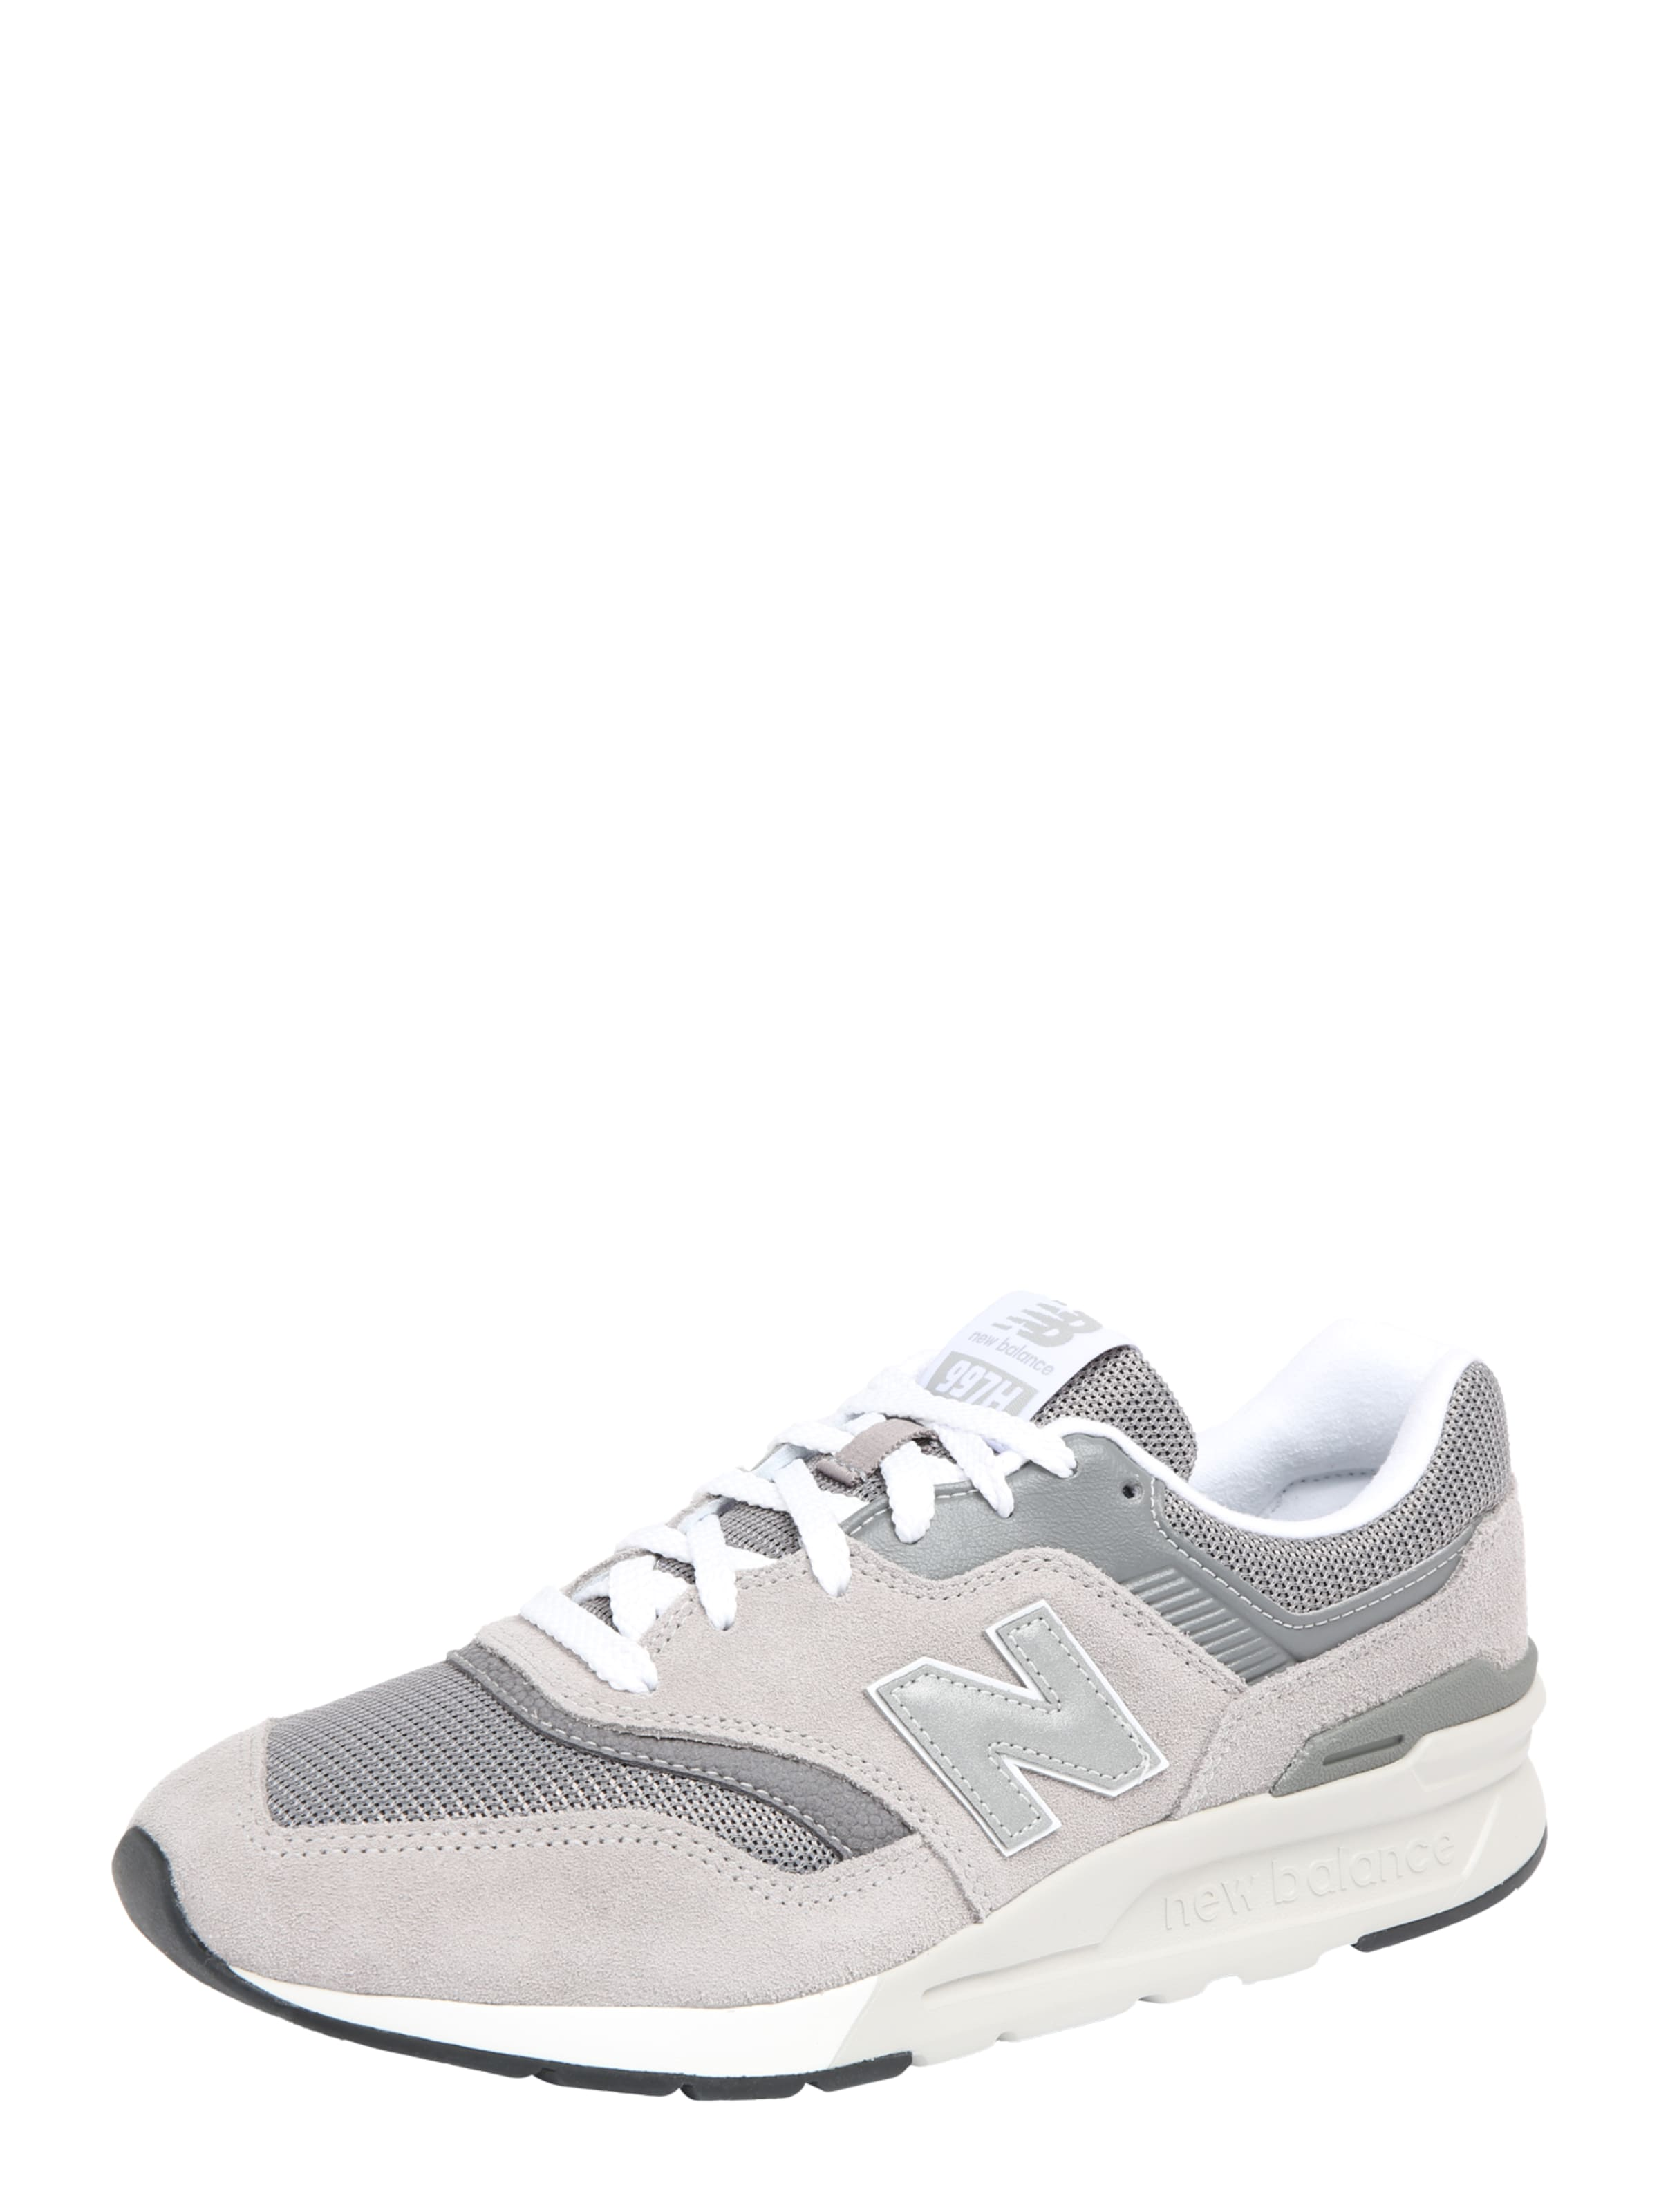 'cm 997' Balance Baskets En Gris New Basses wmnvOyN0P8